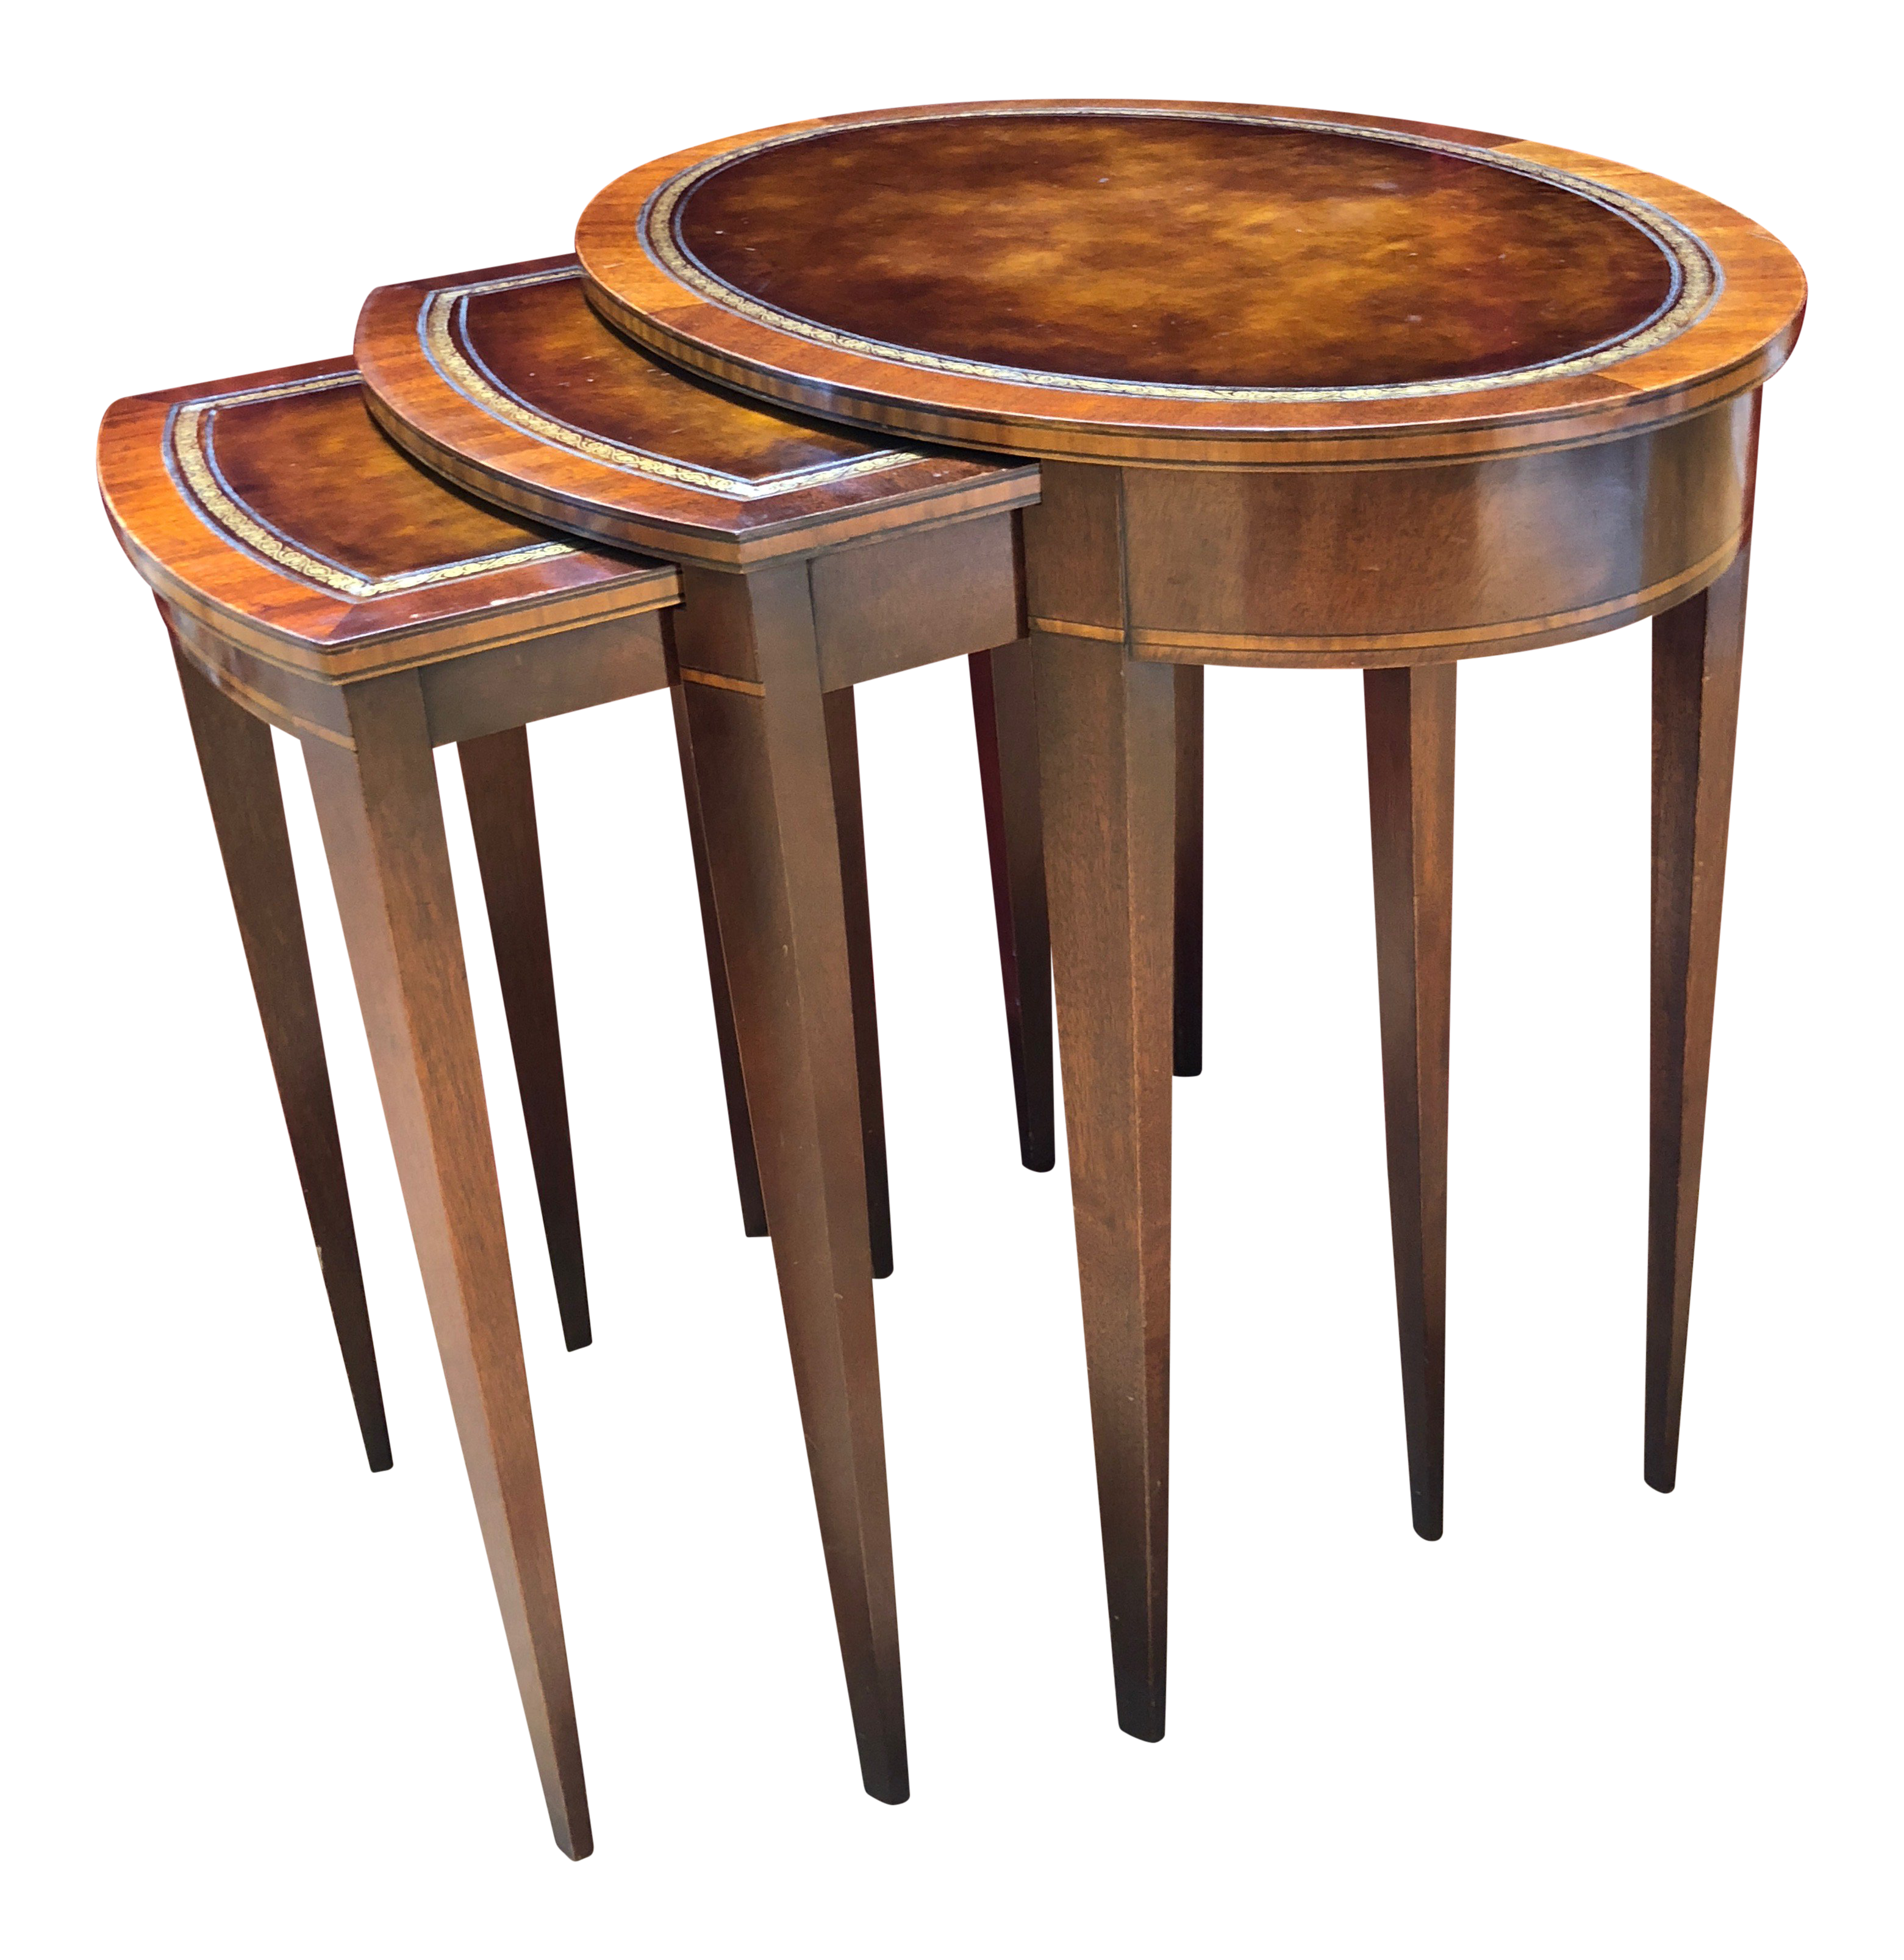 1950 Mid-Century Modern Weiman Furniture Company Leather Top Mahogany Nesting Tables - Set of  sc 1 st  Chairish & Vintage u0026 Used Nesting Tables for Sale | Chairish